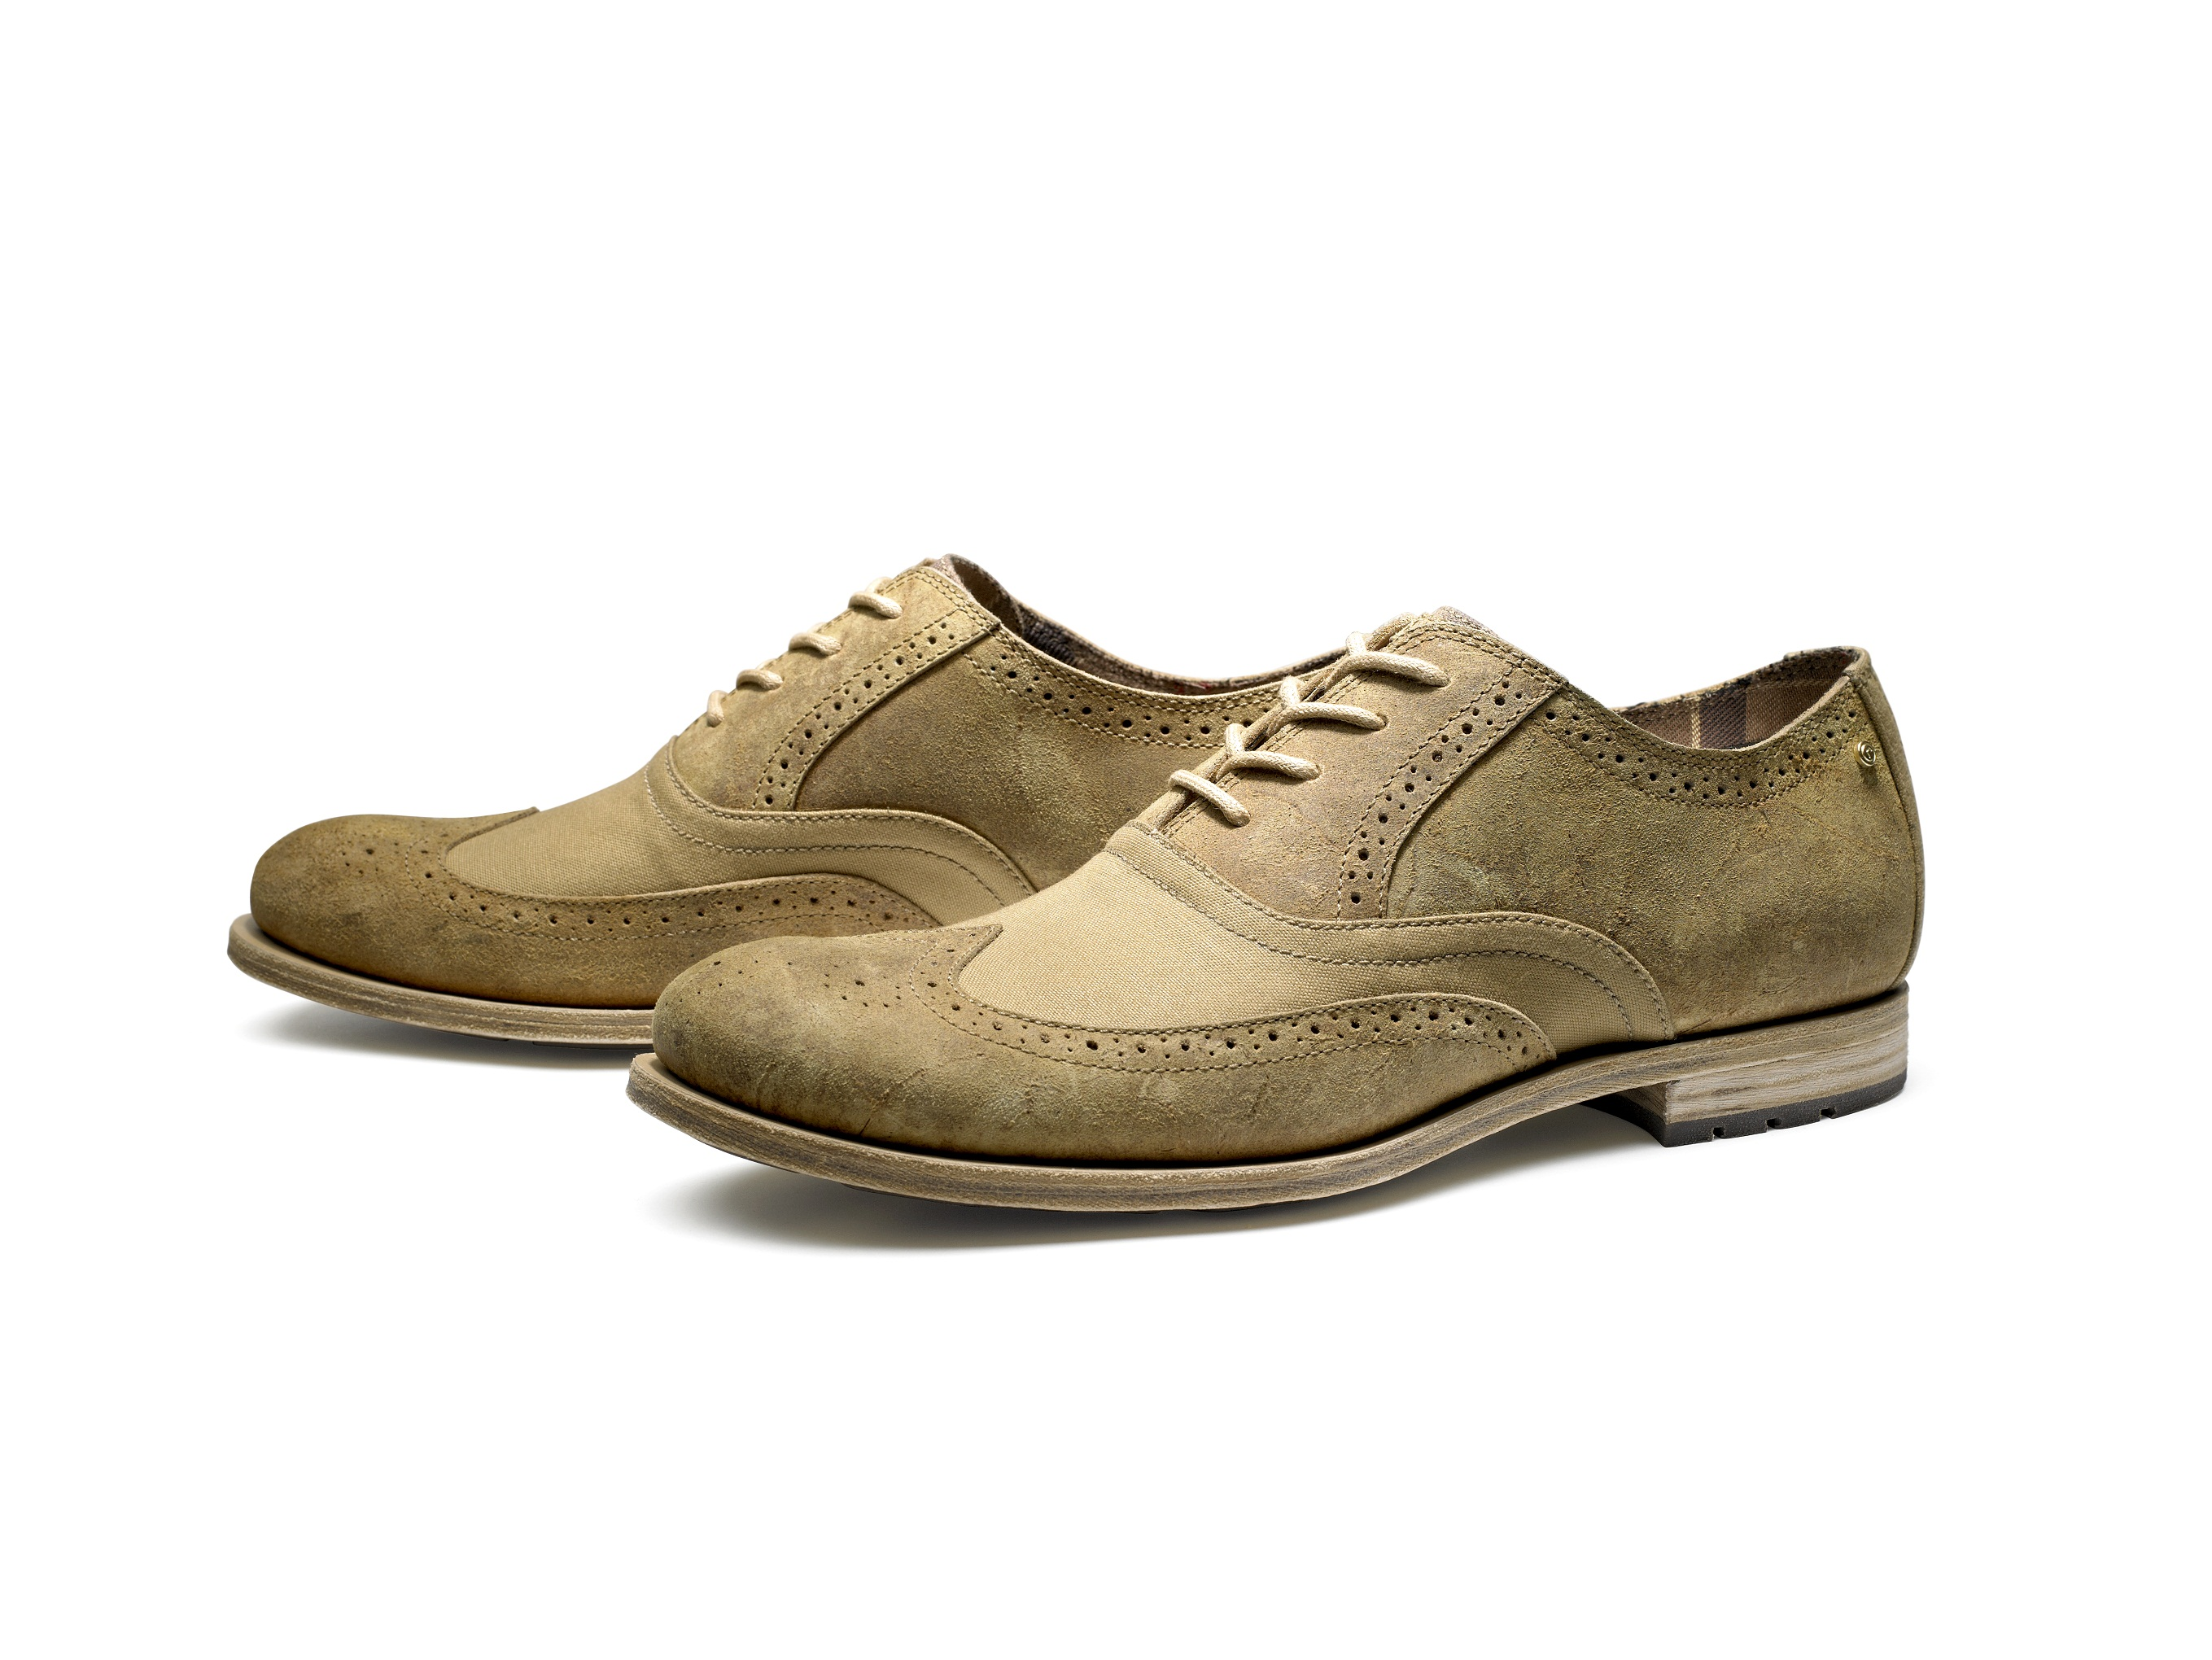 rockport shoes nearby liquor stores/bar 961105